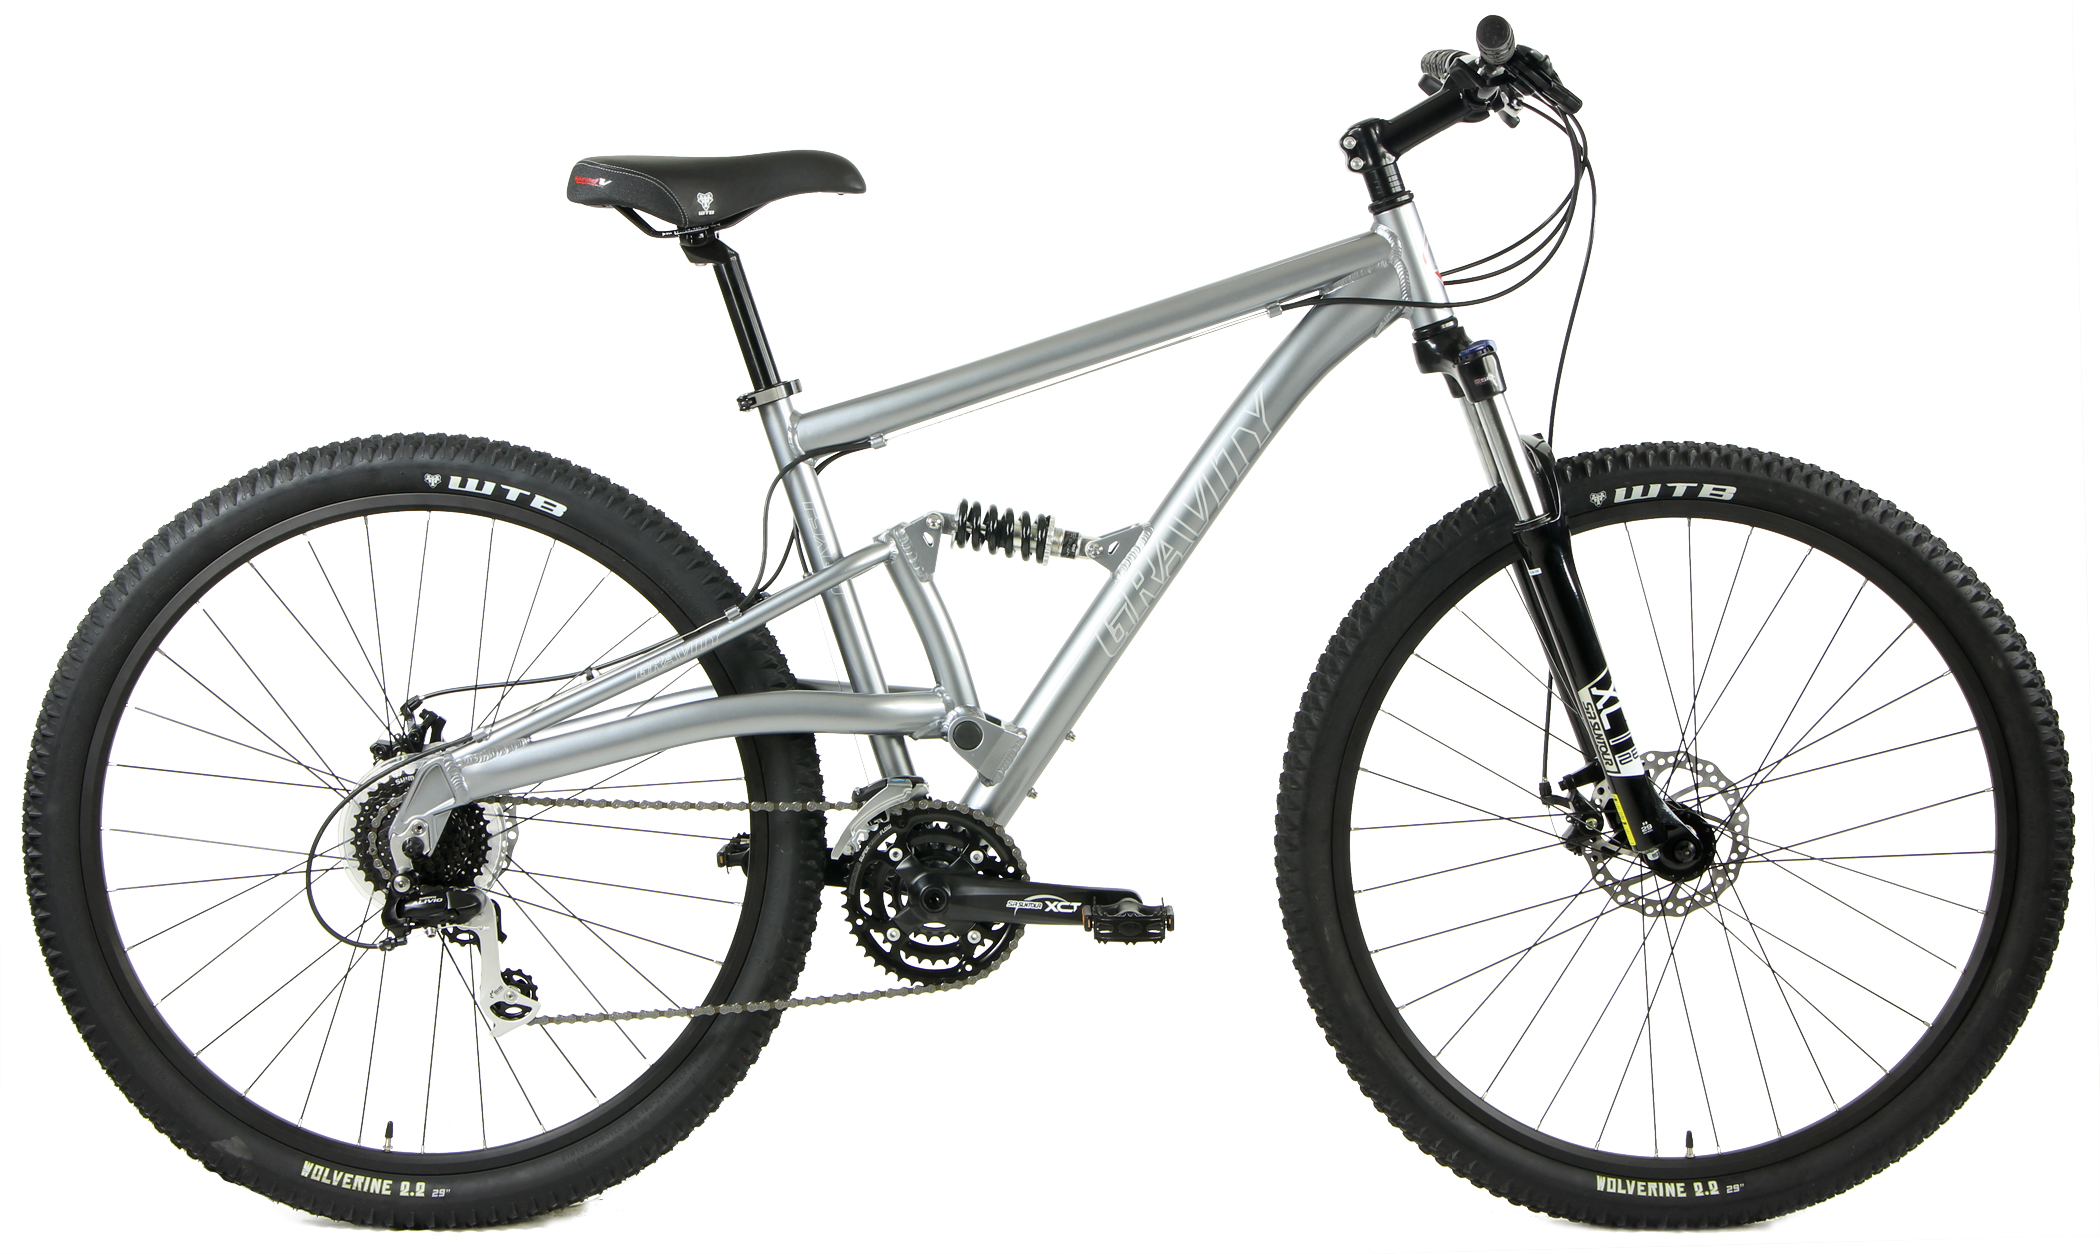 Bikes Gravity FSX 29 LTD Shmano 24 Speed Full Suspension Mountain Bike Image